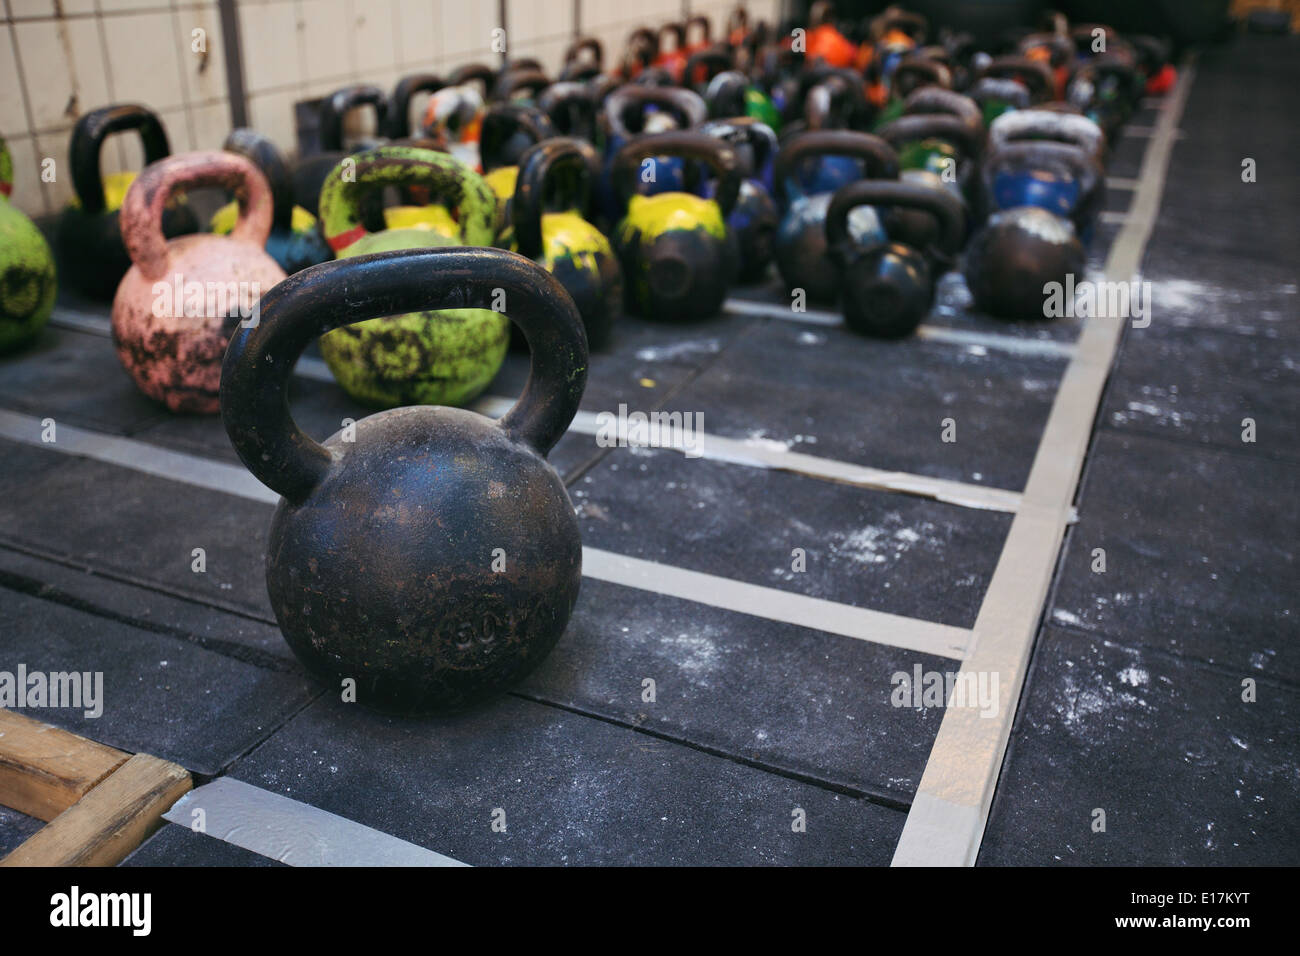 Different sizes of kettlebells weights lying on gym floor. Equipment commonly used for crossfit training at fitness club - Stock Image